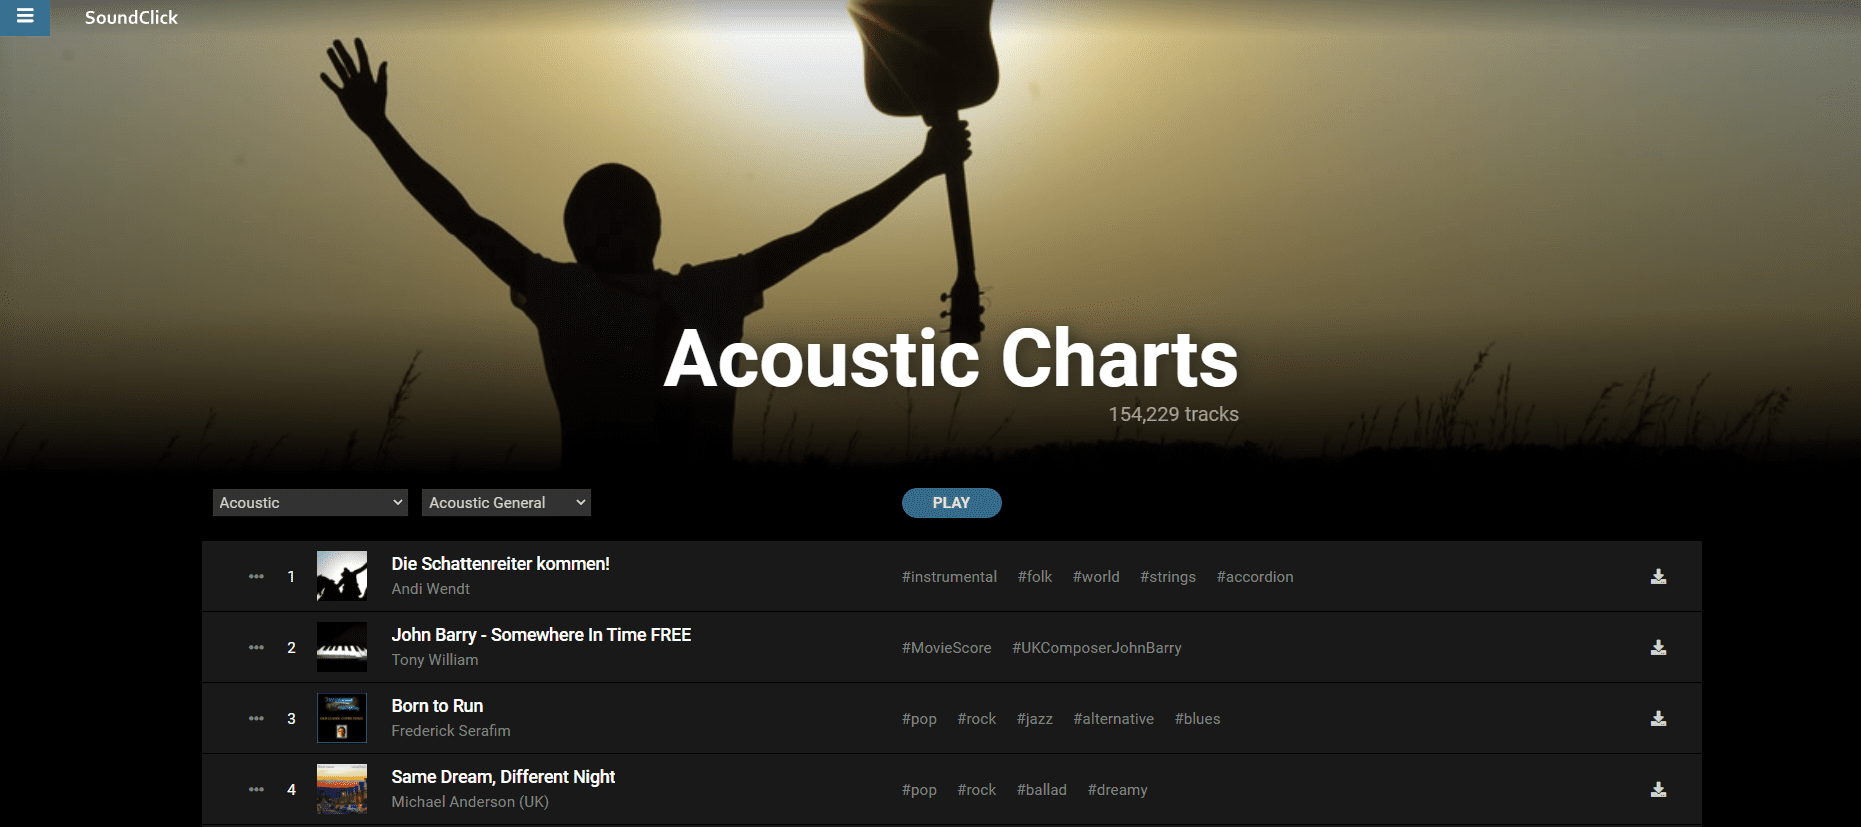 free acoustic music downloads at soundclick